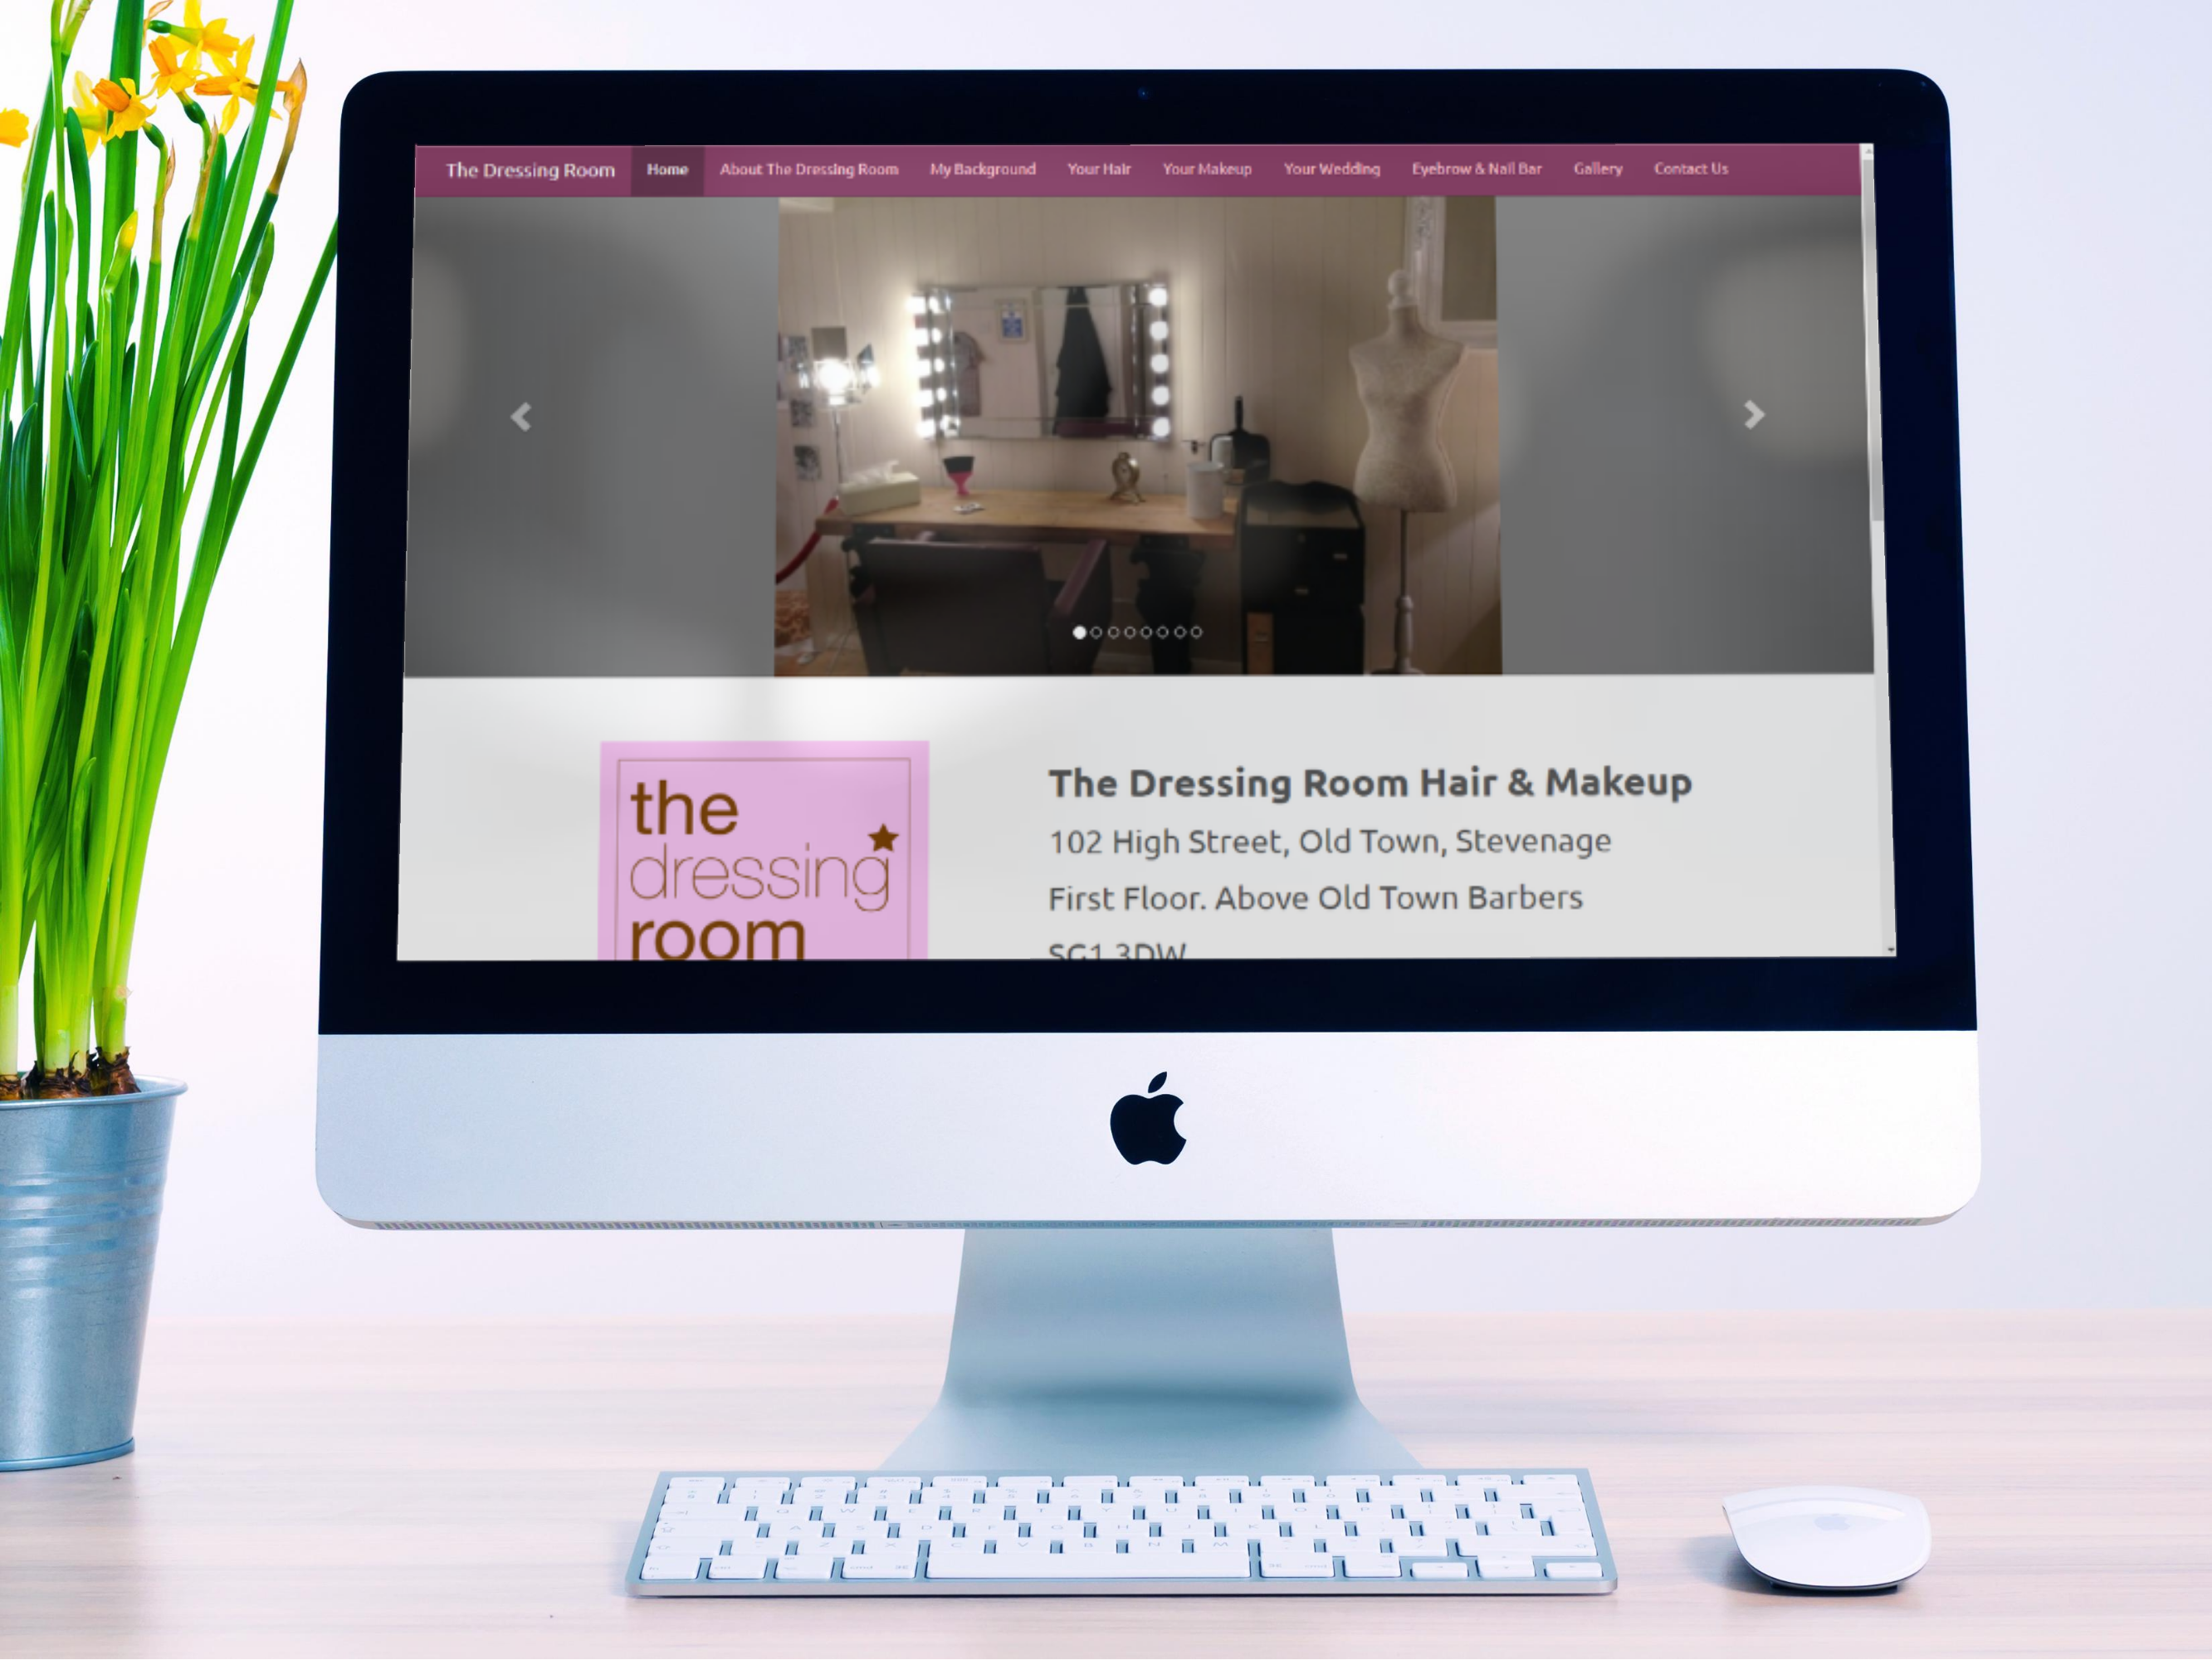 The Dressing Room Hair & Makeup Website